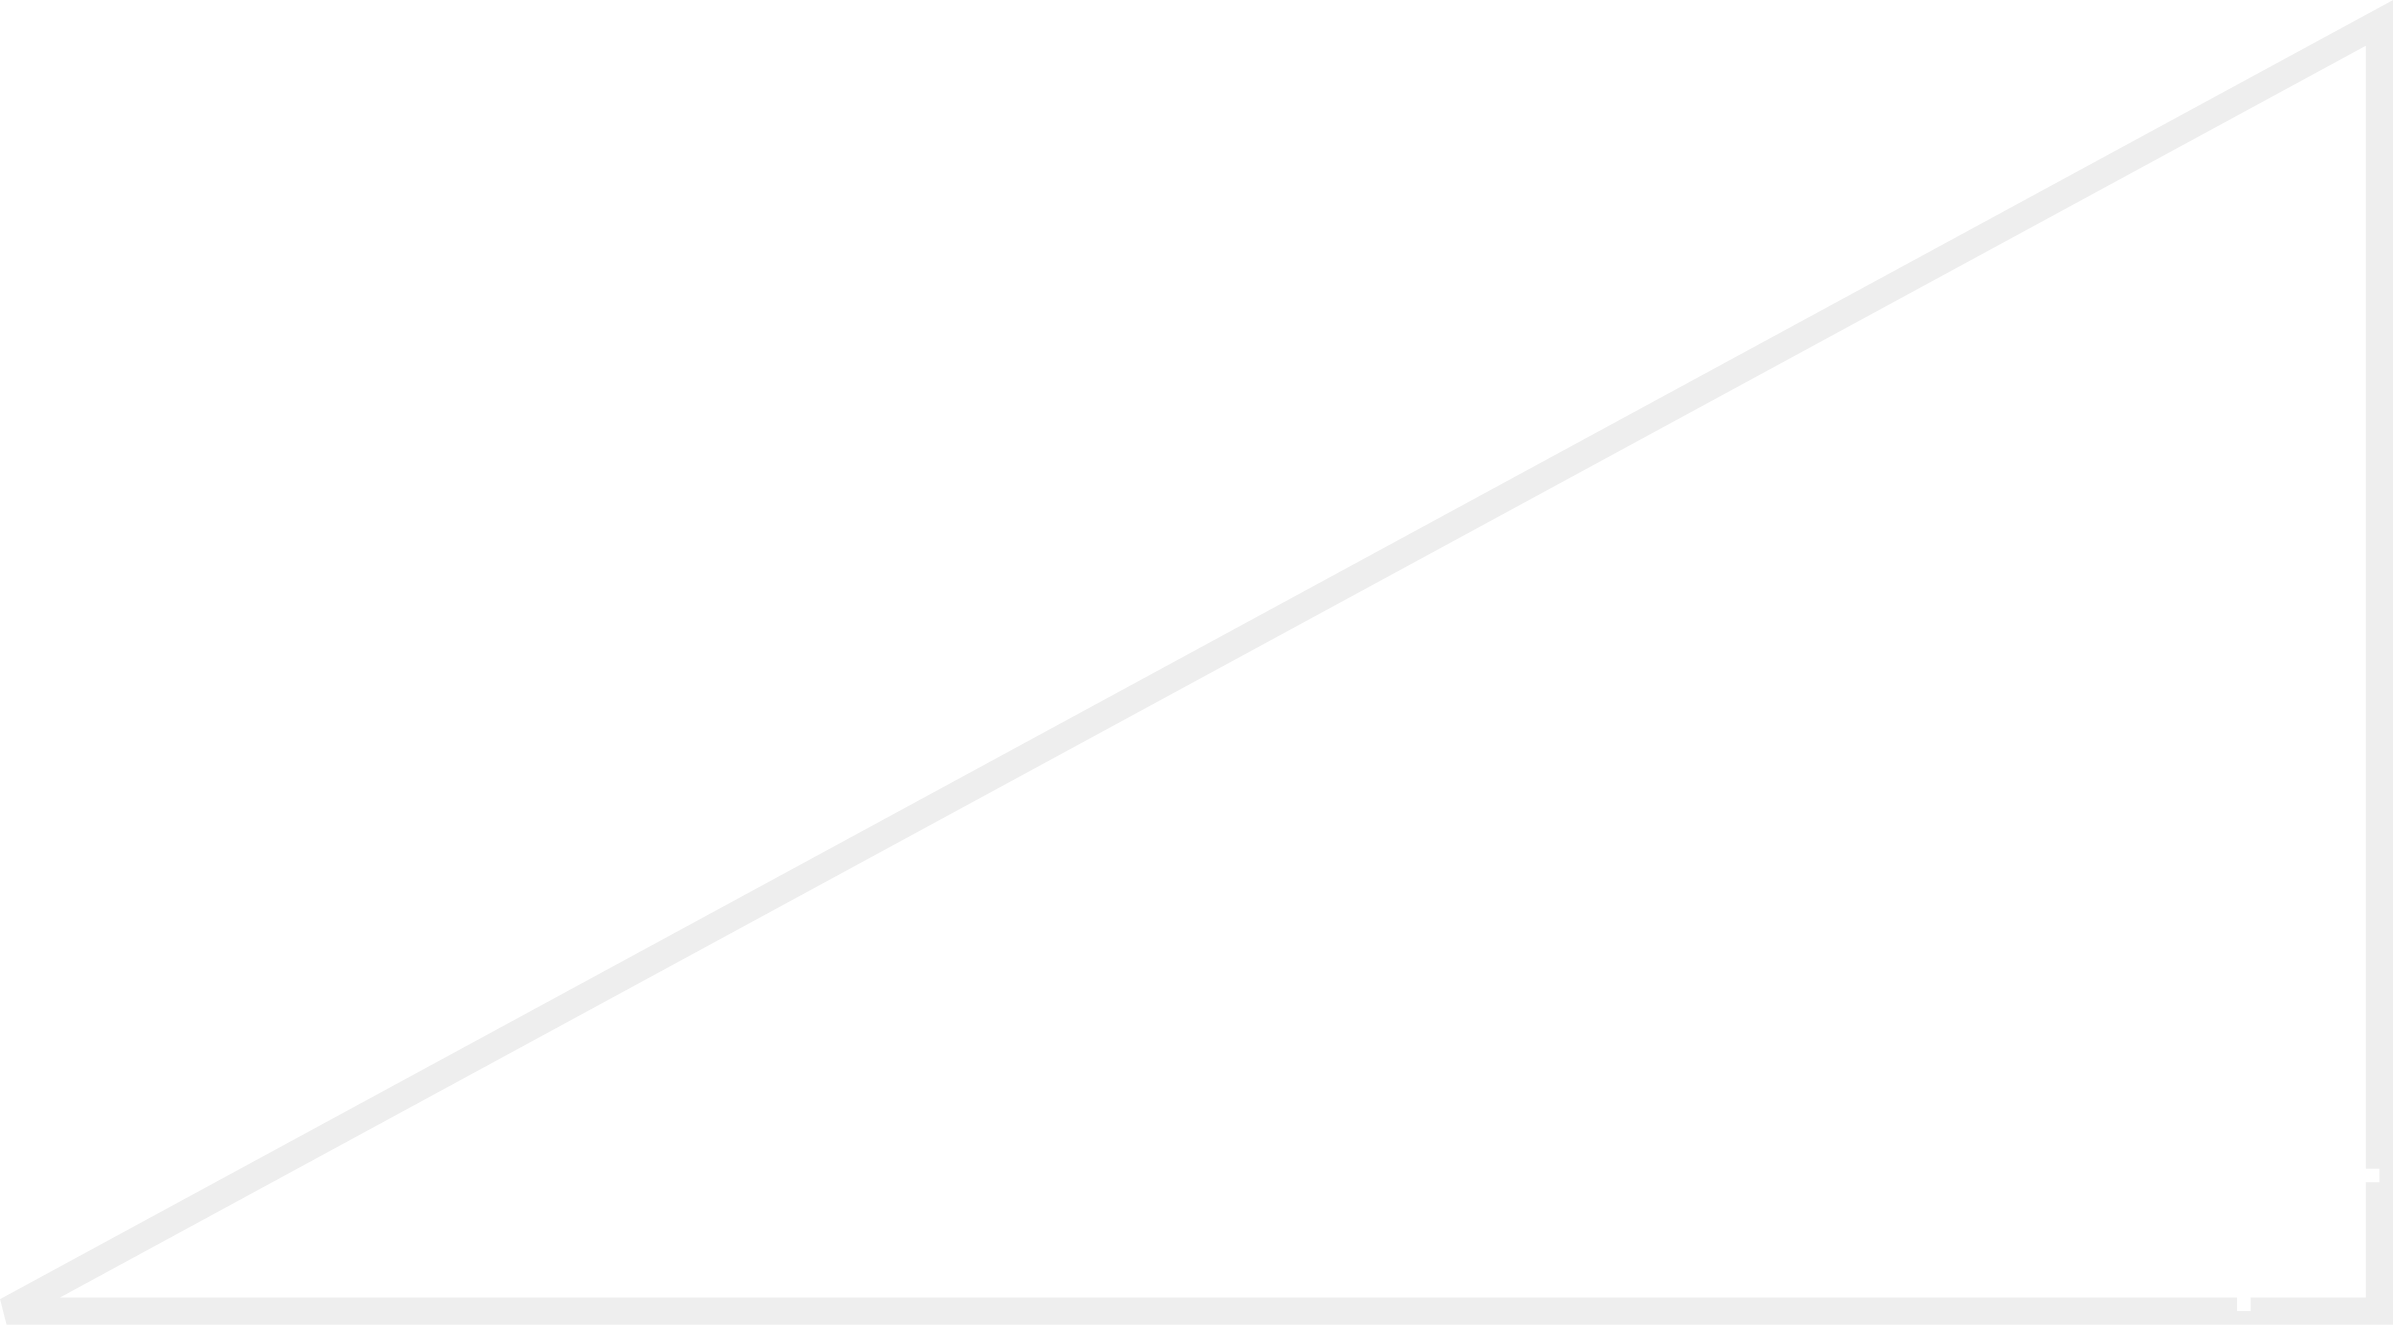 Right triangle png. Clipart angled big image